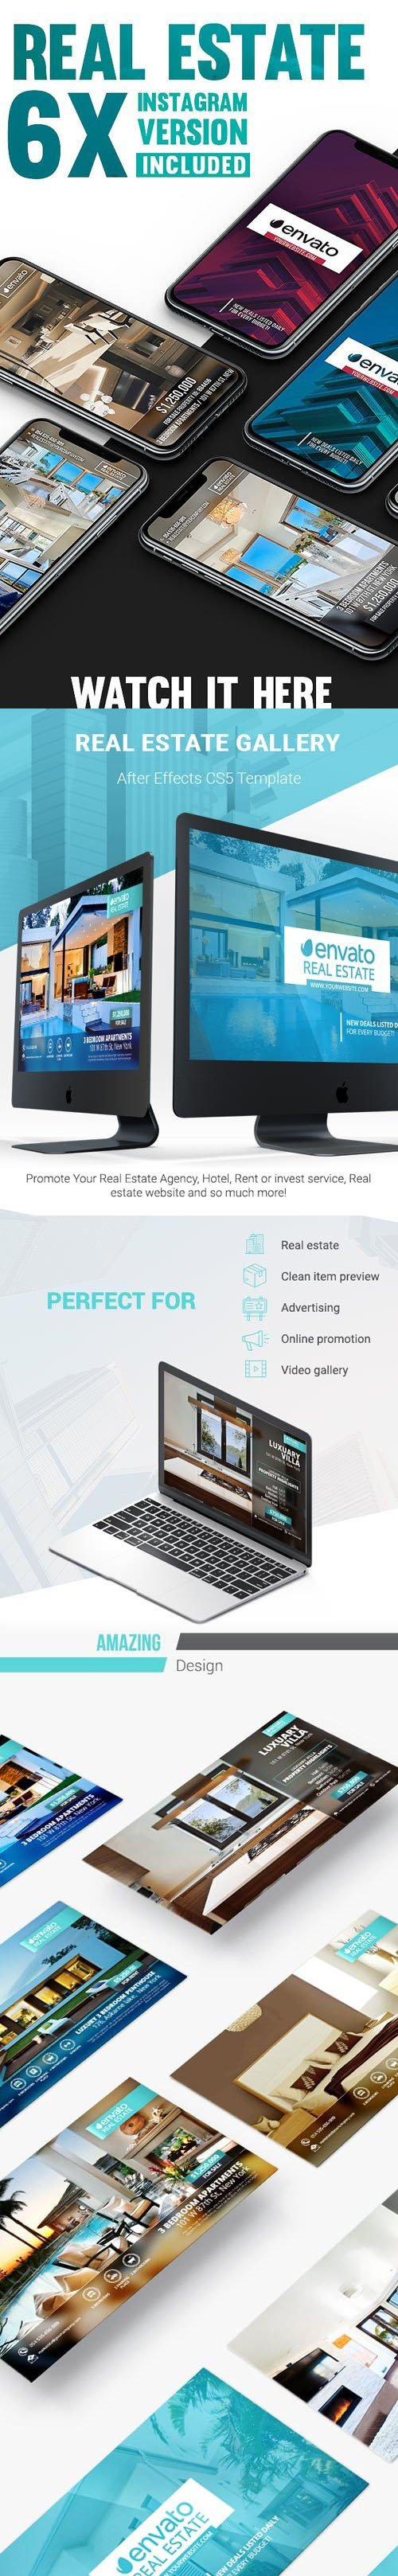 Real Estate Gallery 2.3.3 - Videohive